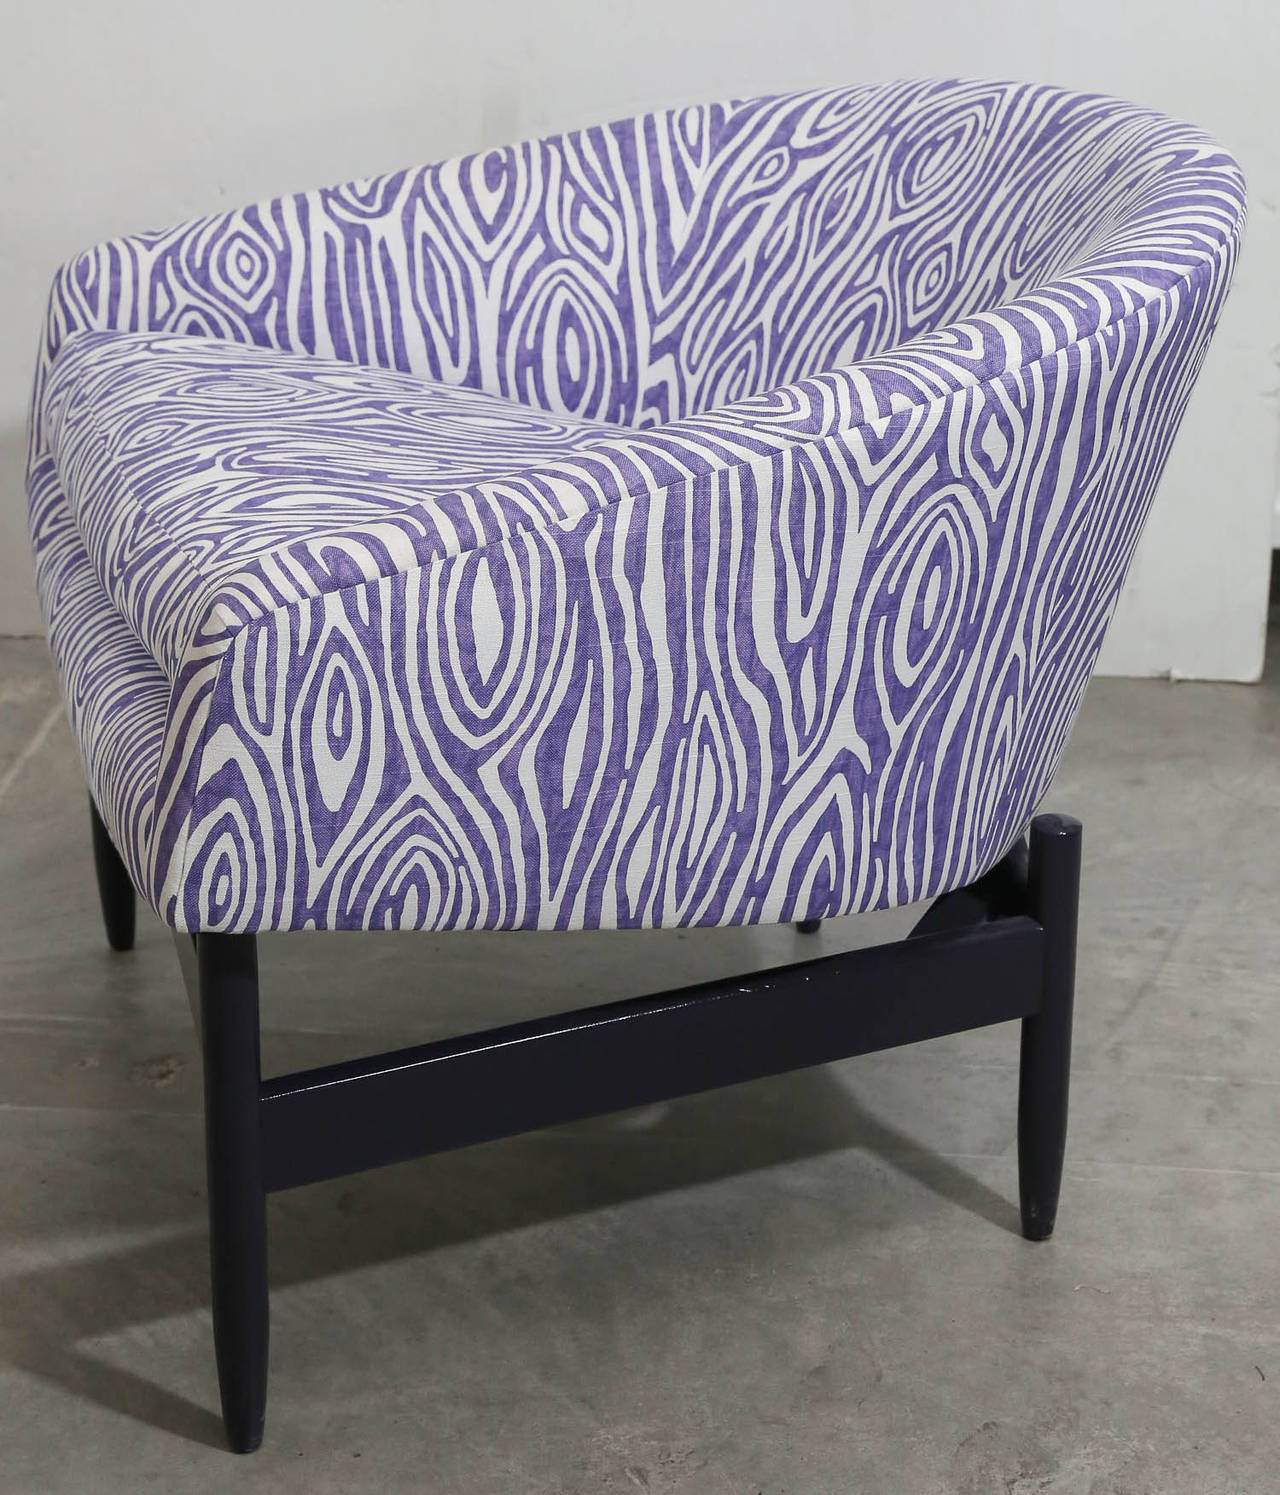 20th Century Pair of Newly Upholstered Purple & White Animal Print Barrel Back Lounge Chairs For Sale